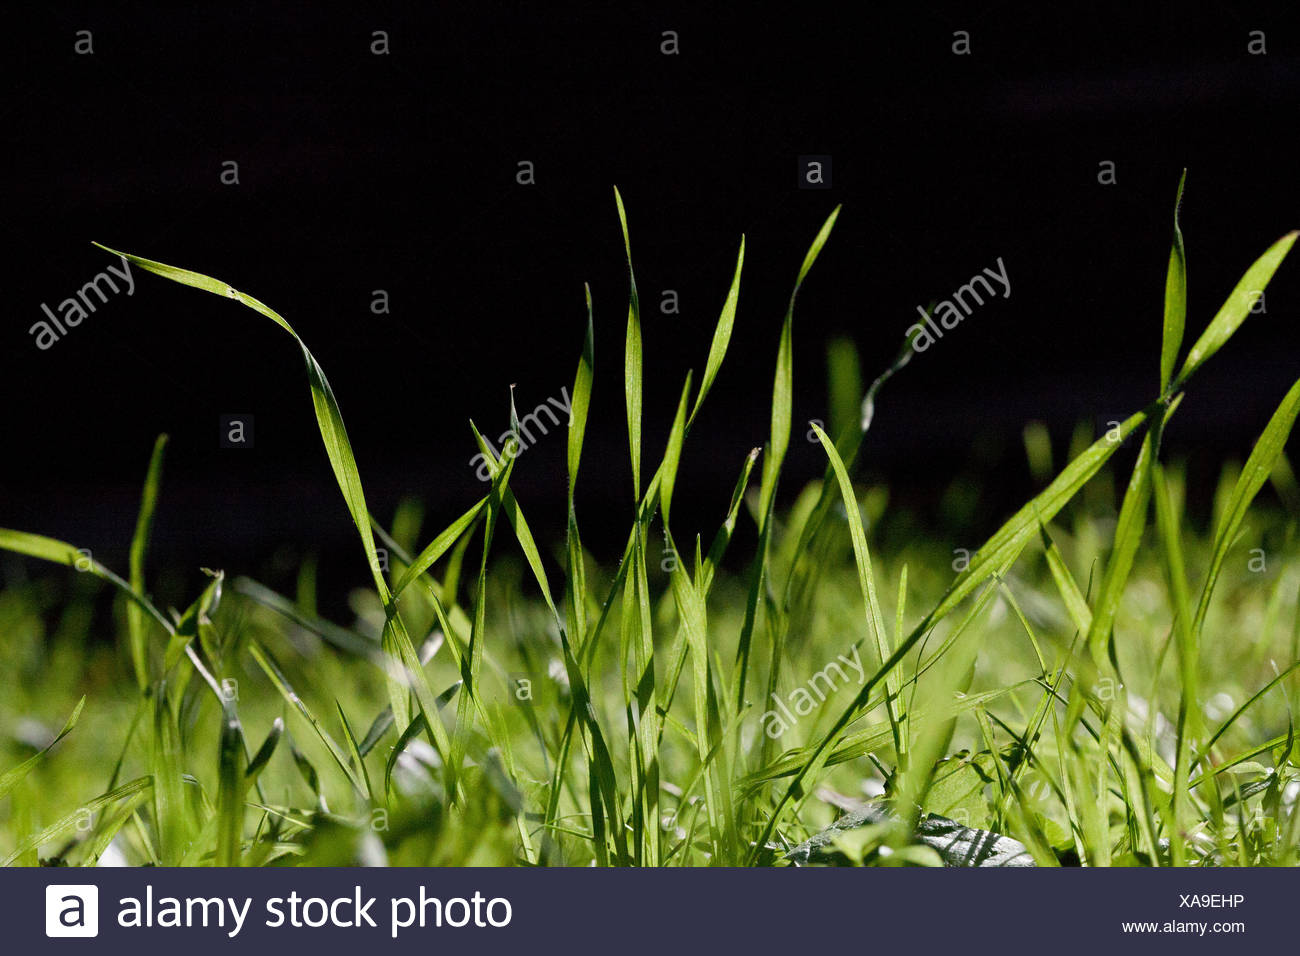 Blades of grass, close up - Stock Image